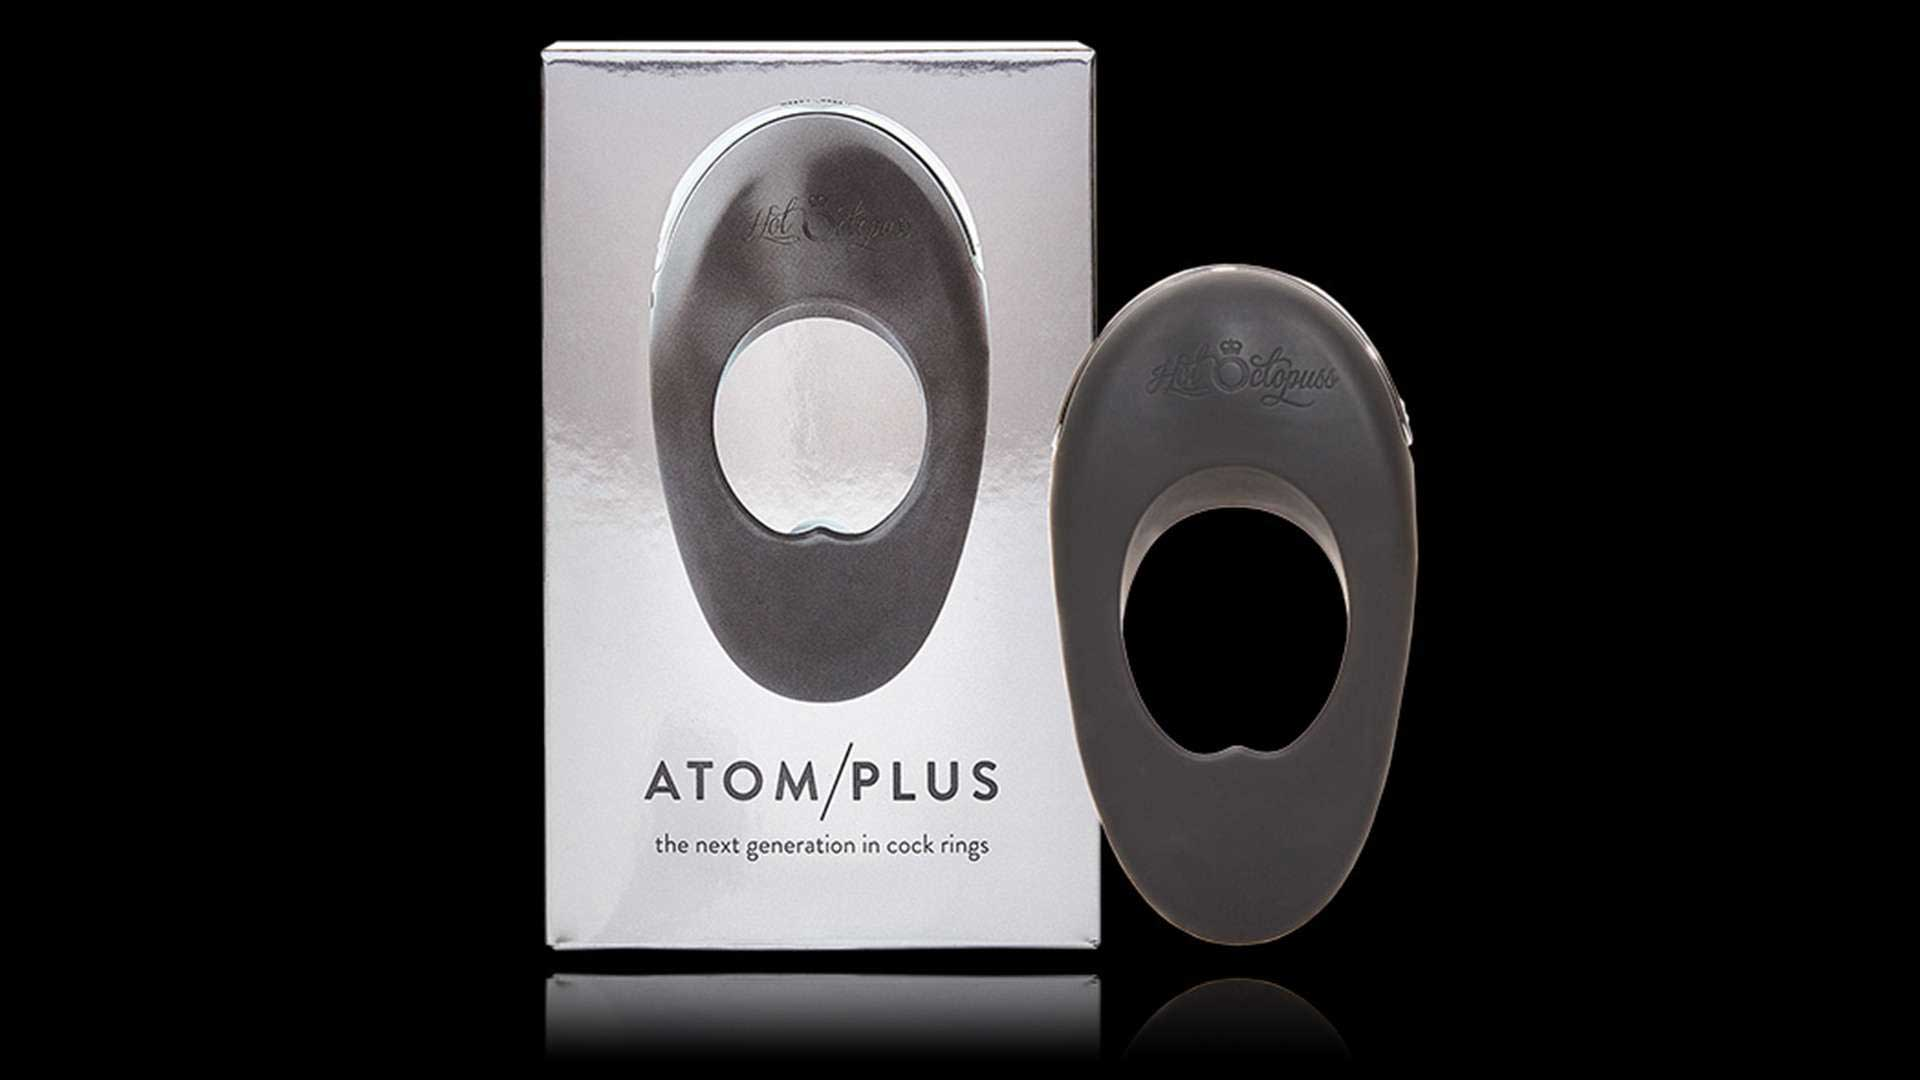 ATOM PLUS box and product